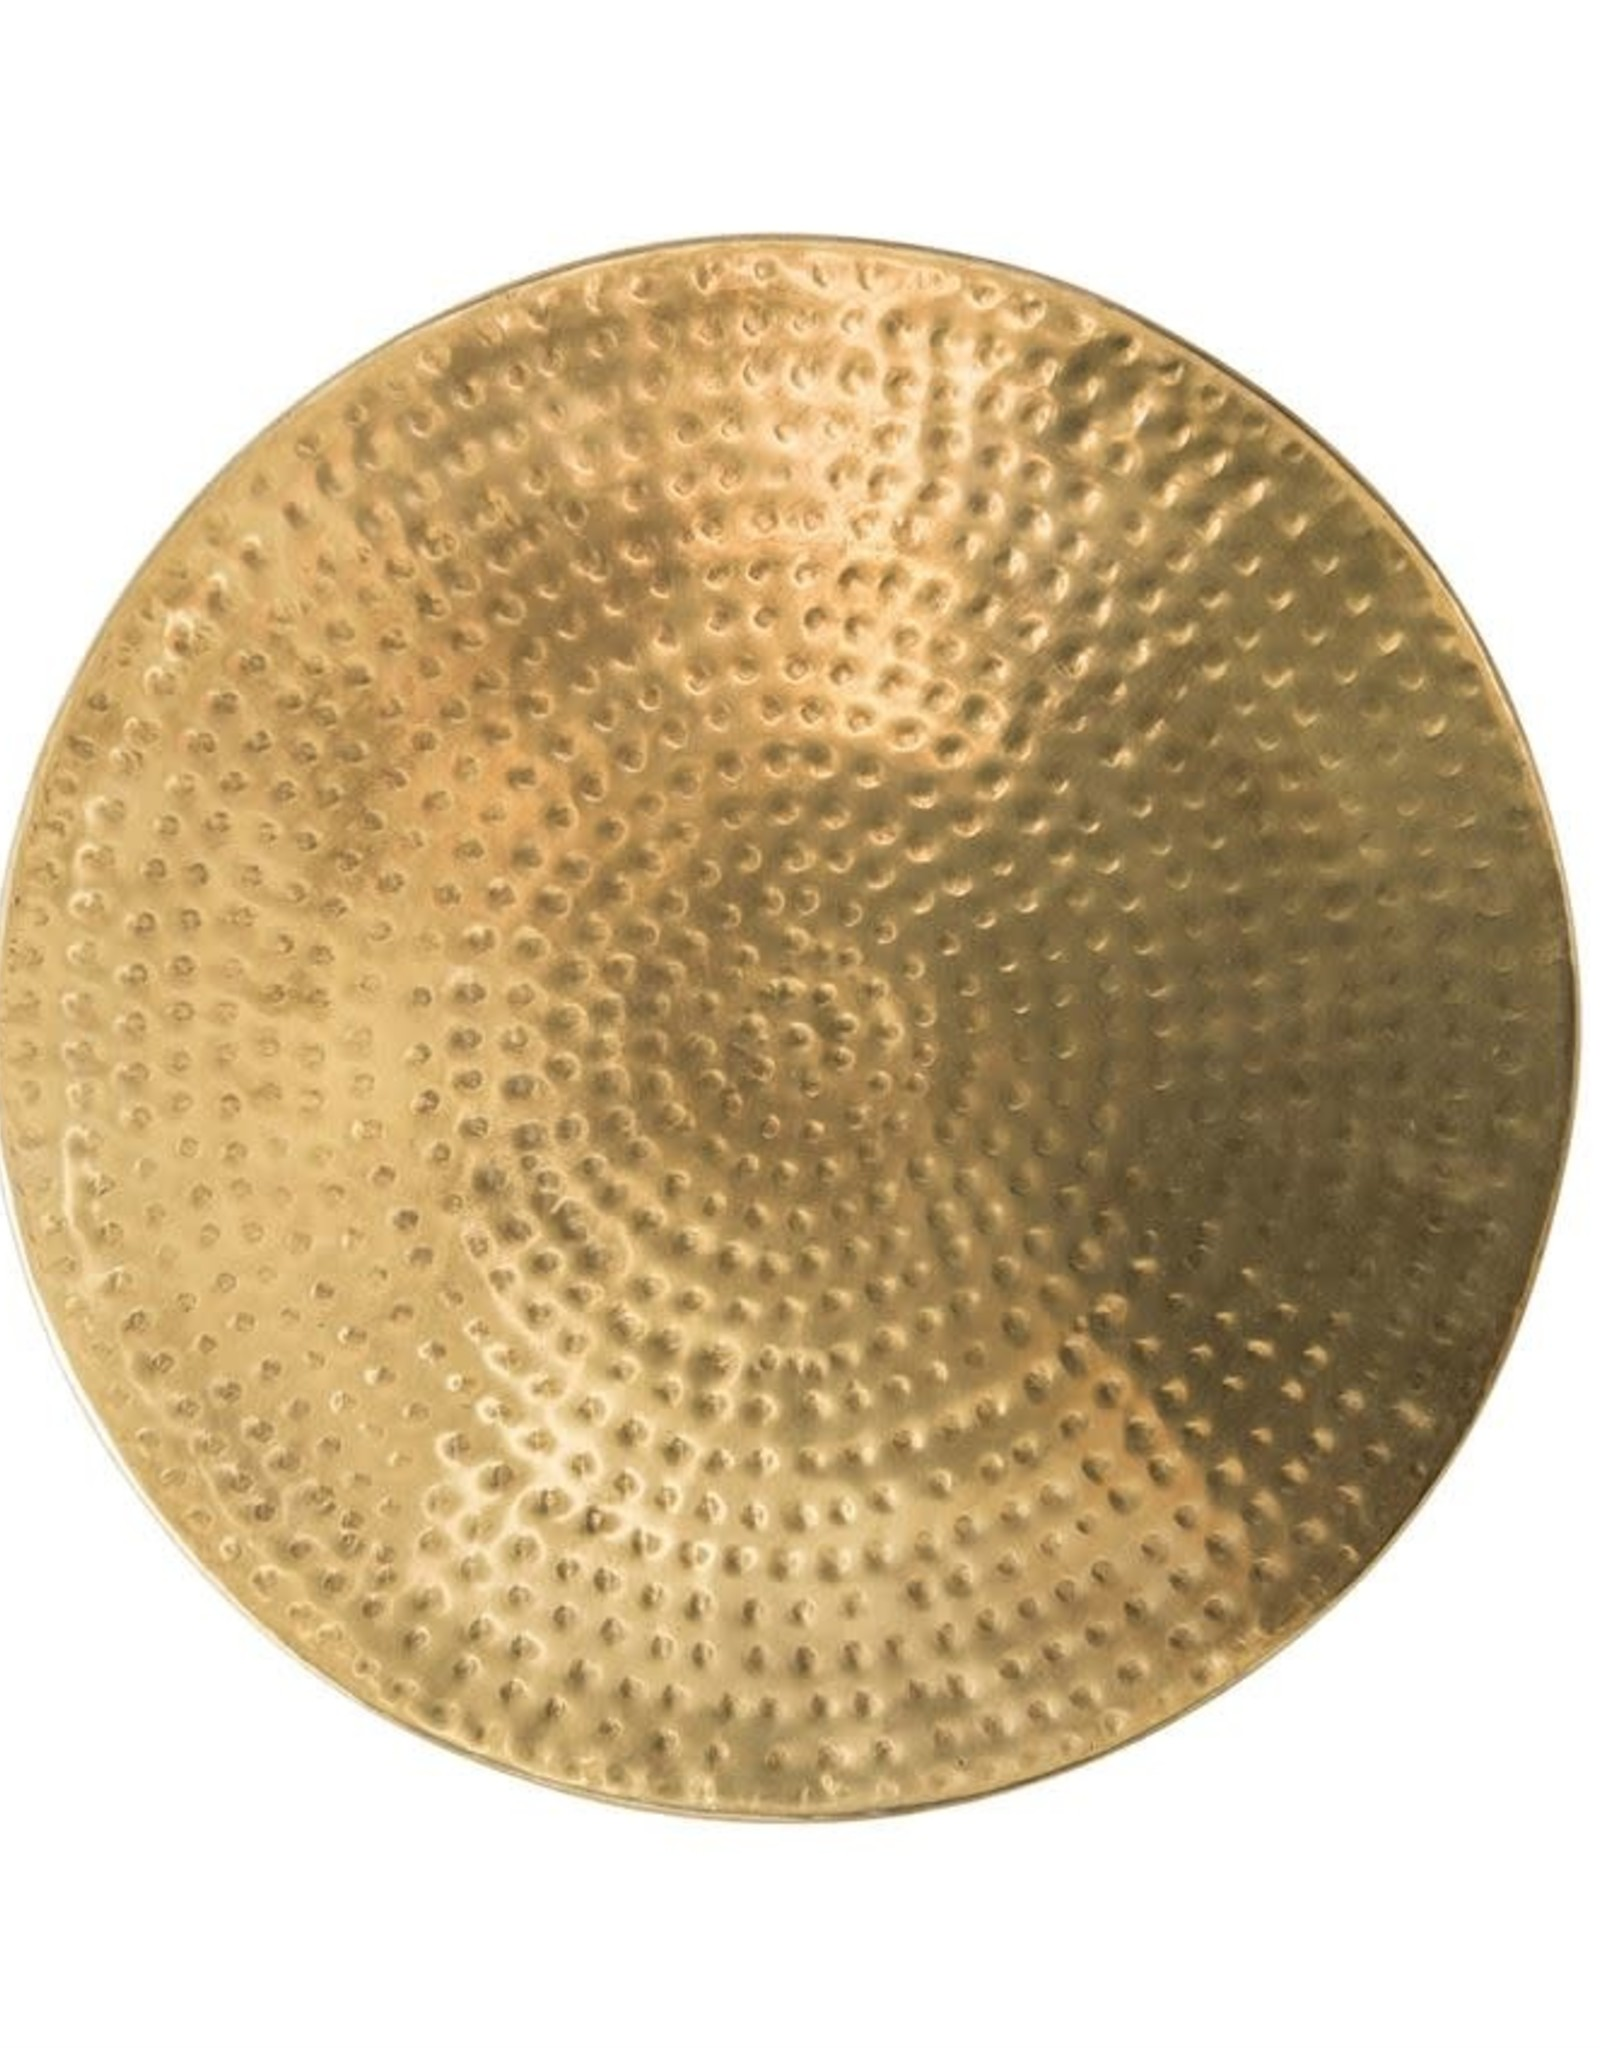 TABLE DRUM WITH LID ANTIQUE BRASS 16 X 17 INCHES